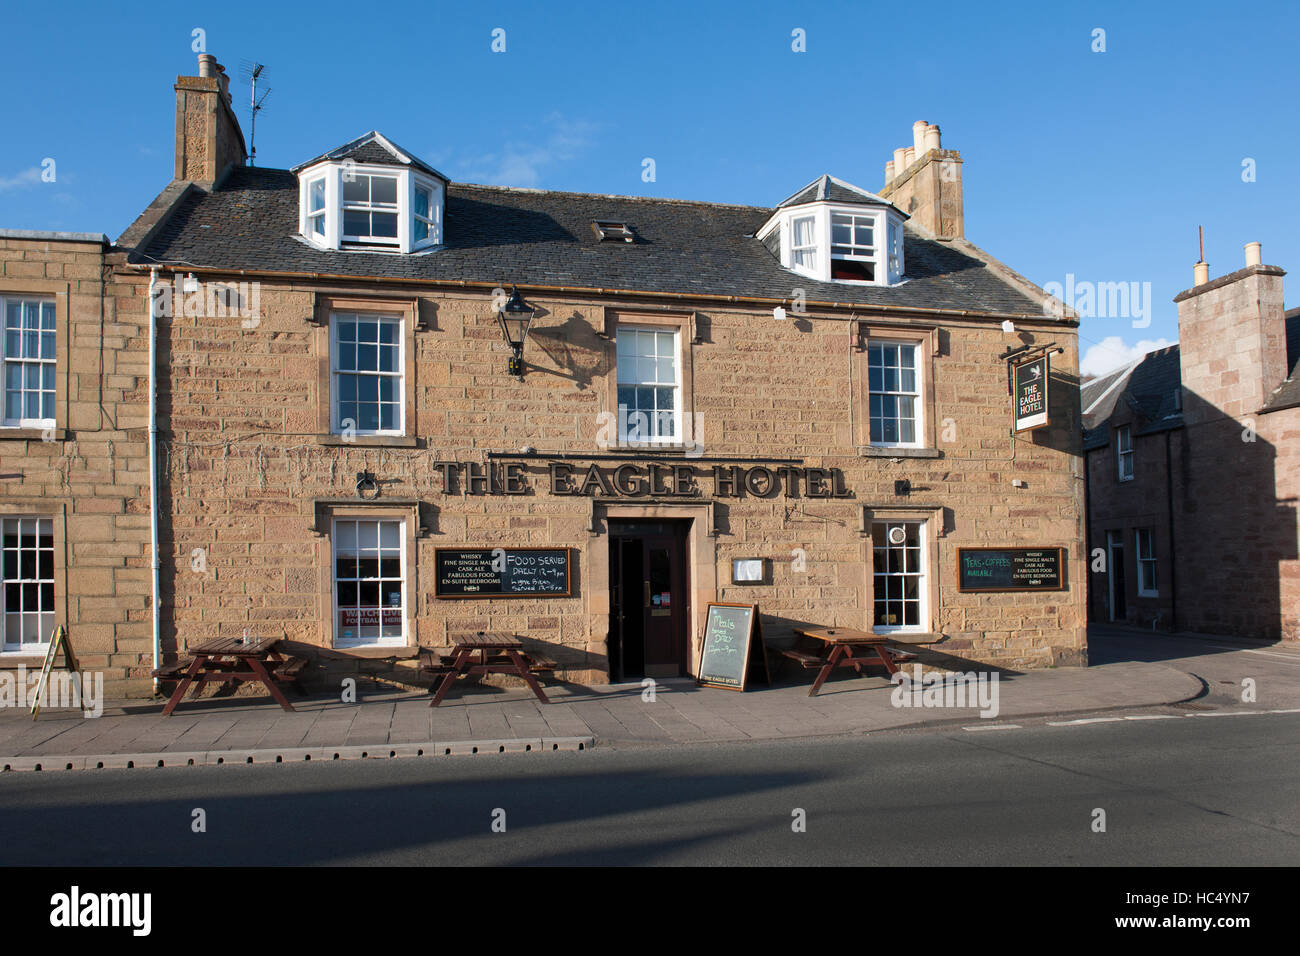 The Eagle Hotel, Castle Street, Dornoch, Sutherland, Scotland, UK. - Stock Image